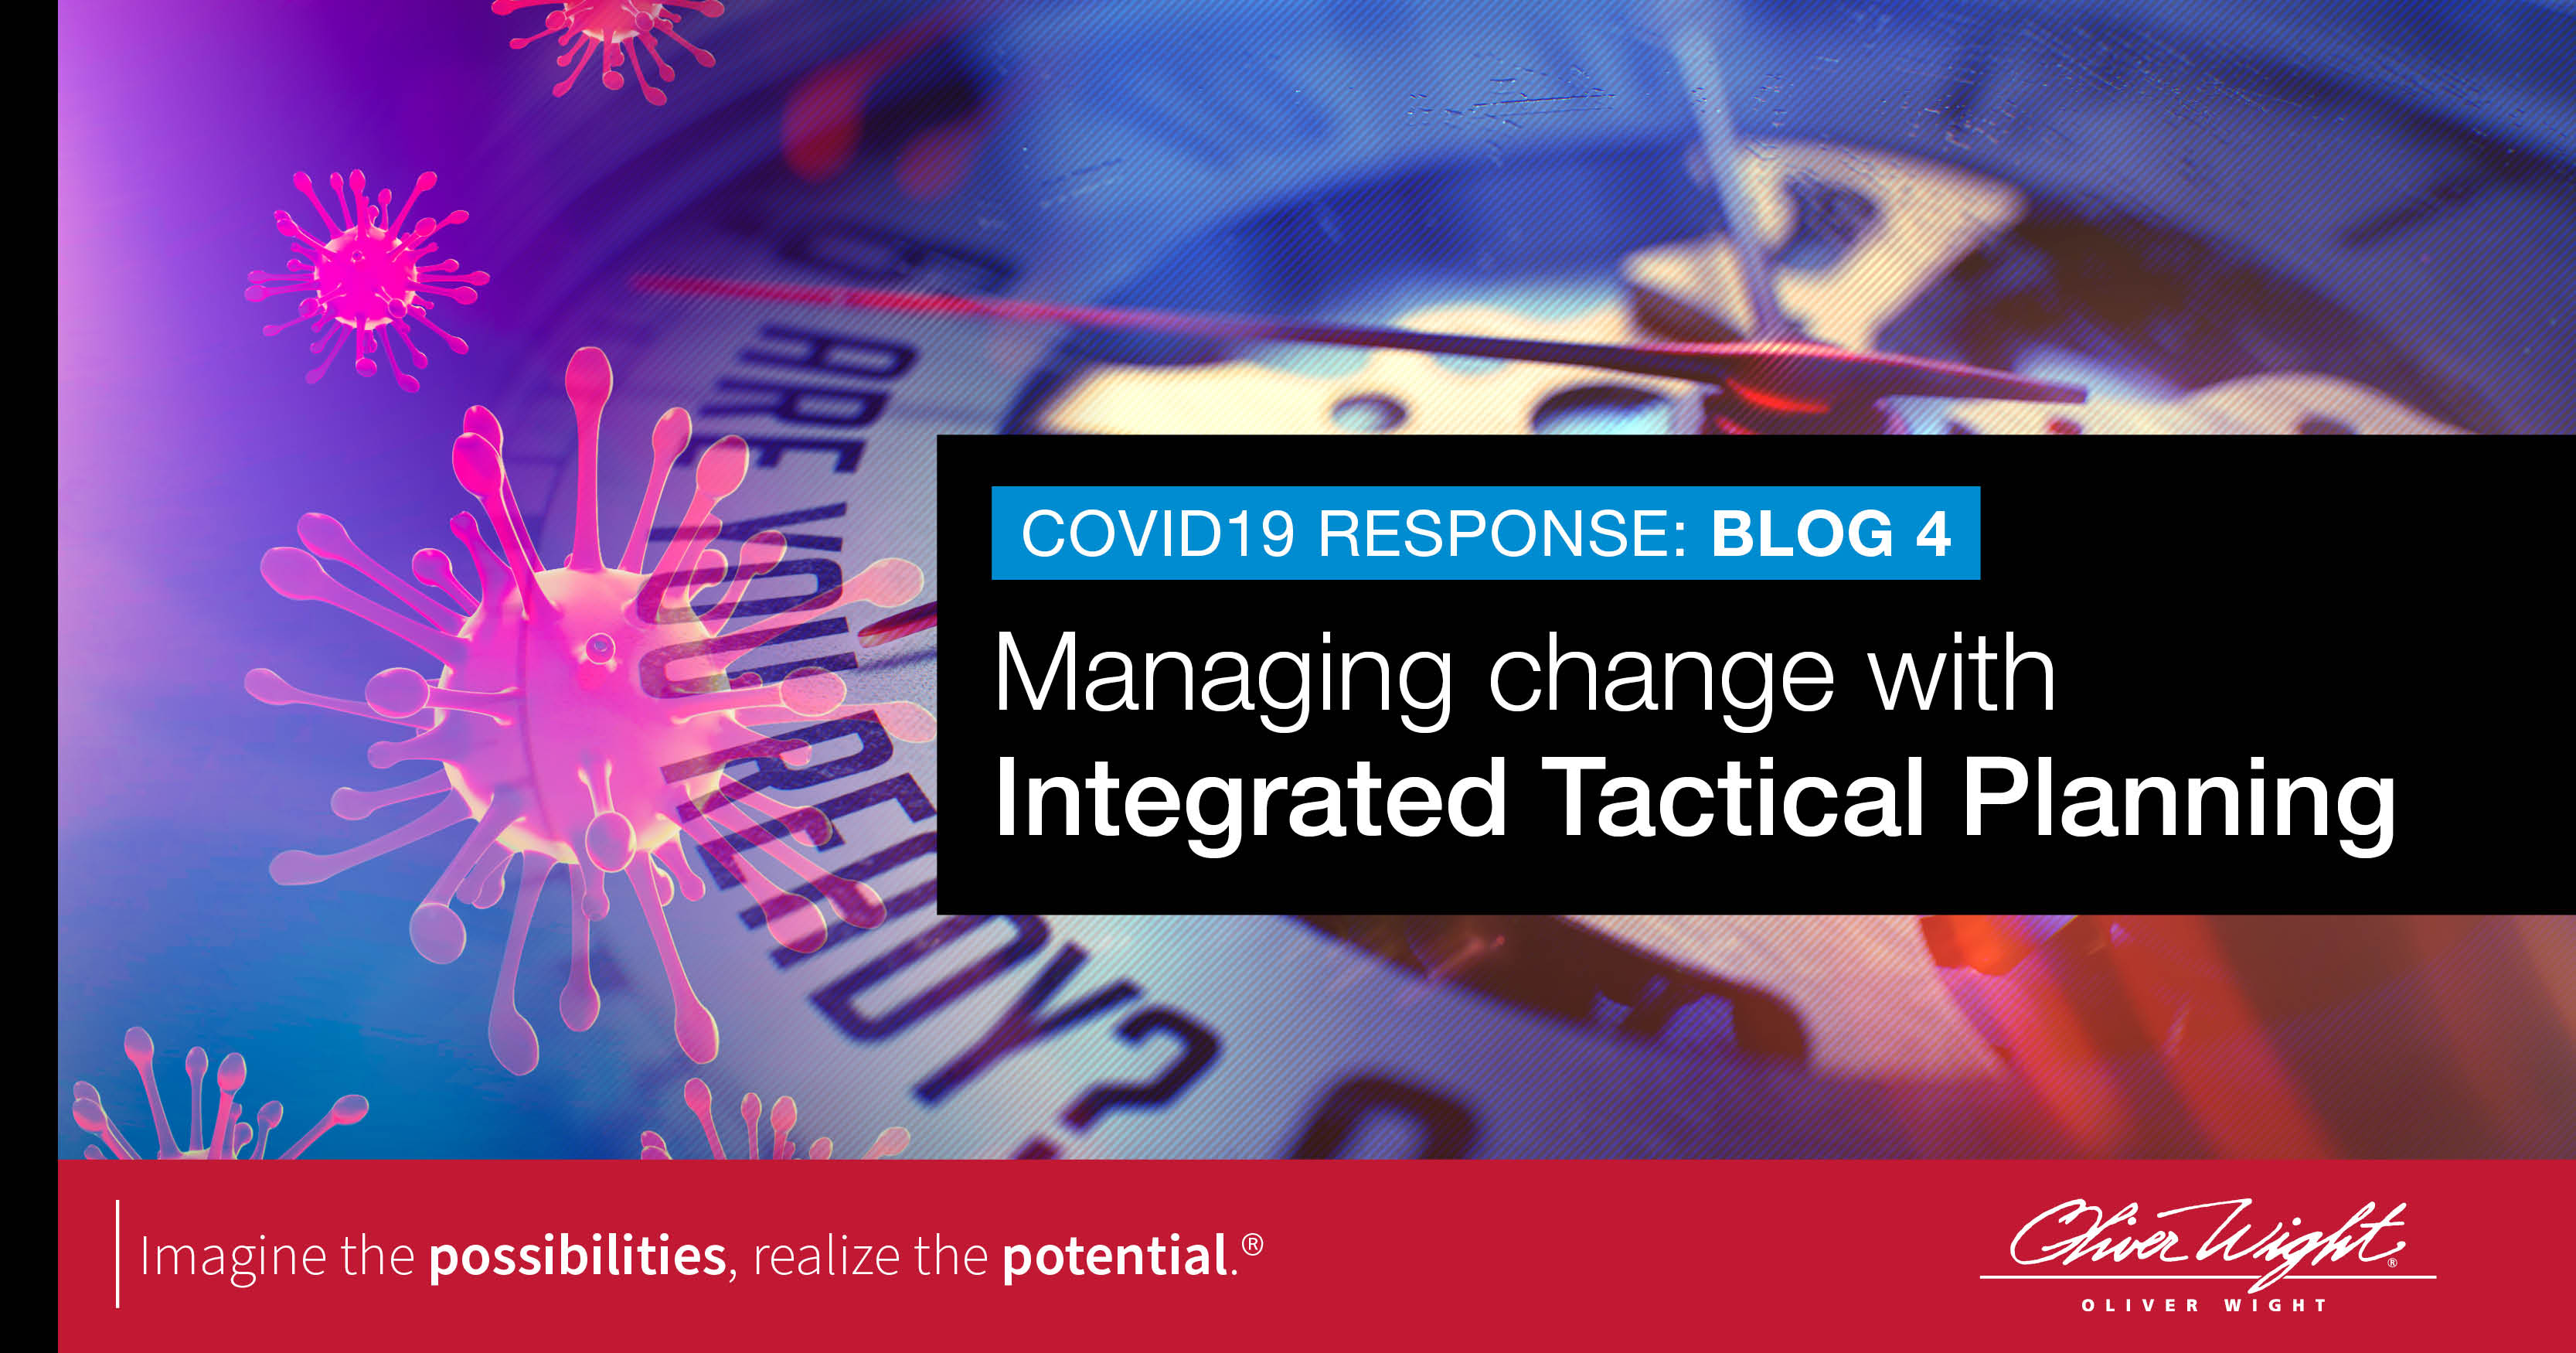 Managing change with Integrated Tactical Planning